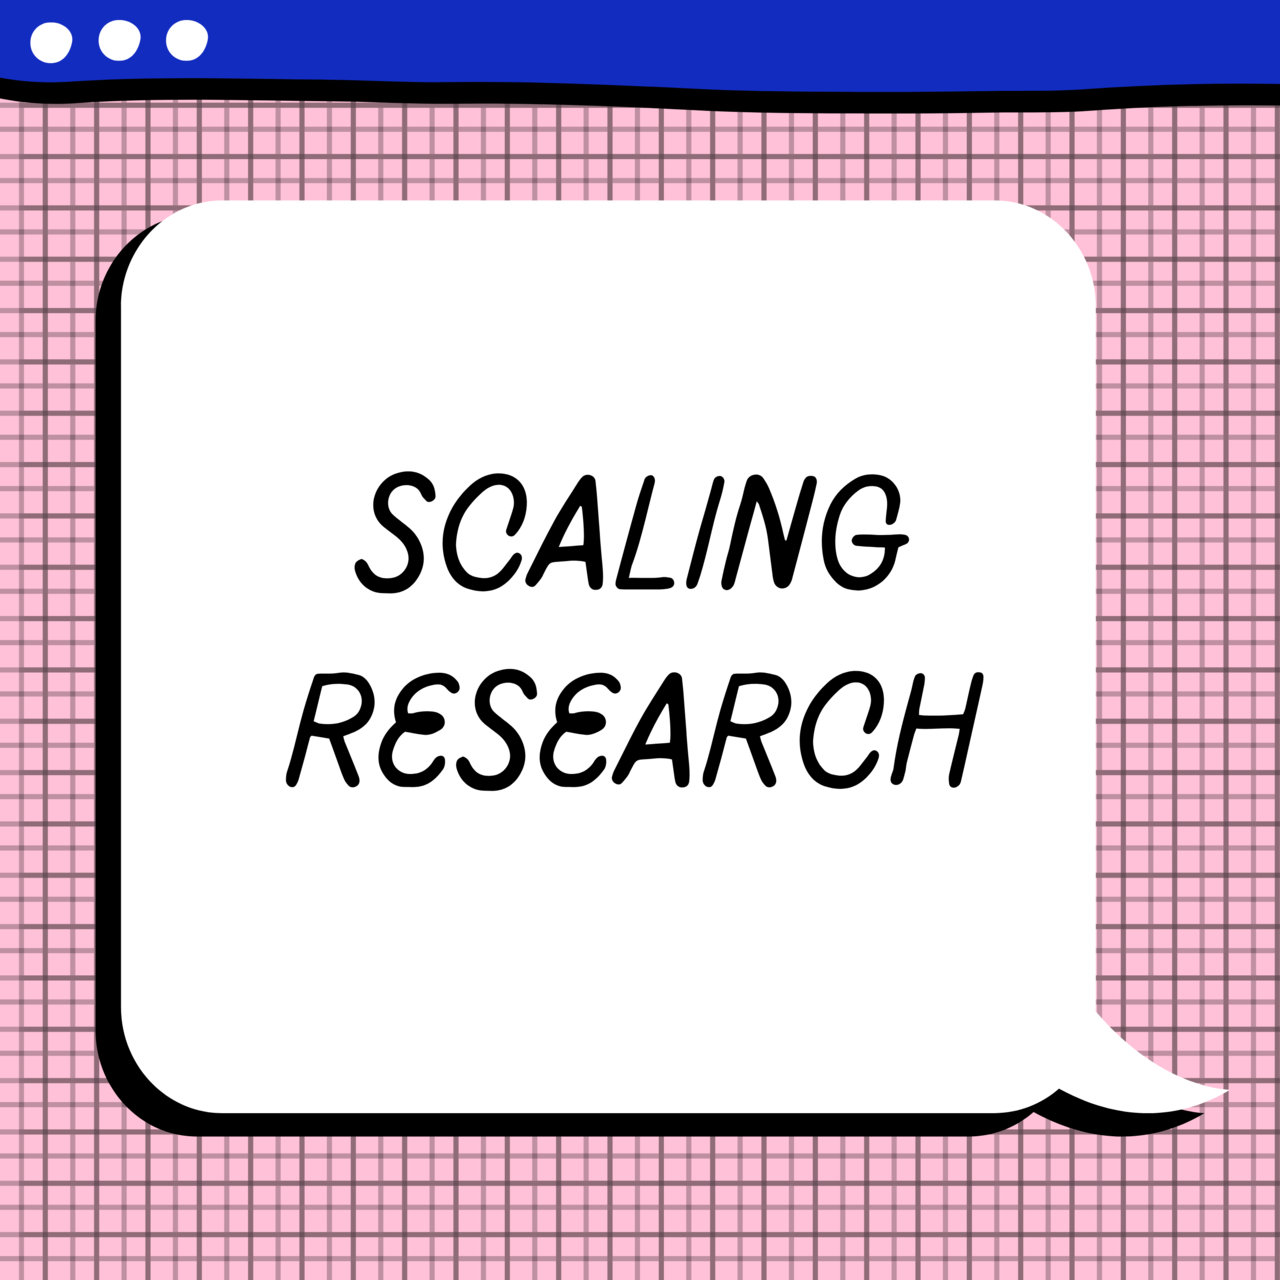 Scaling Research